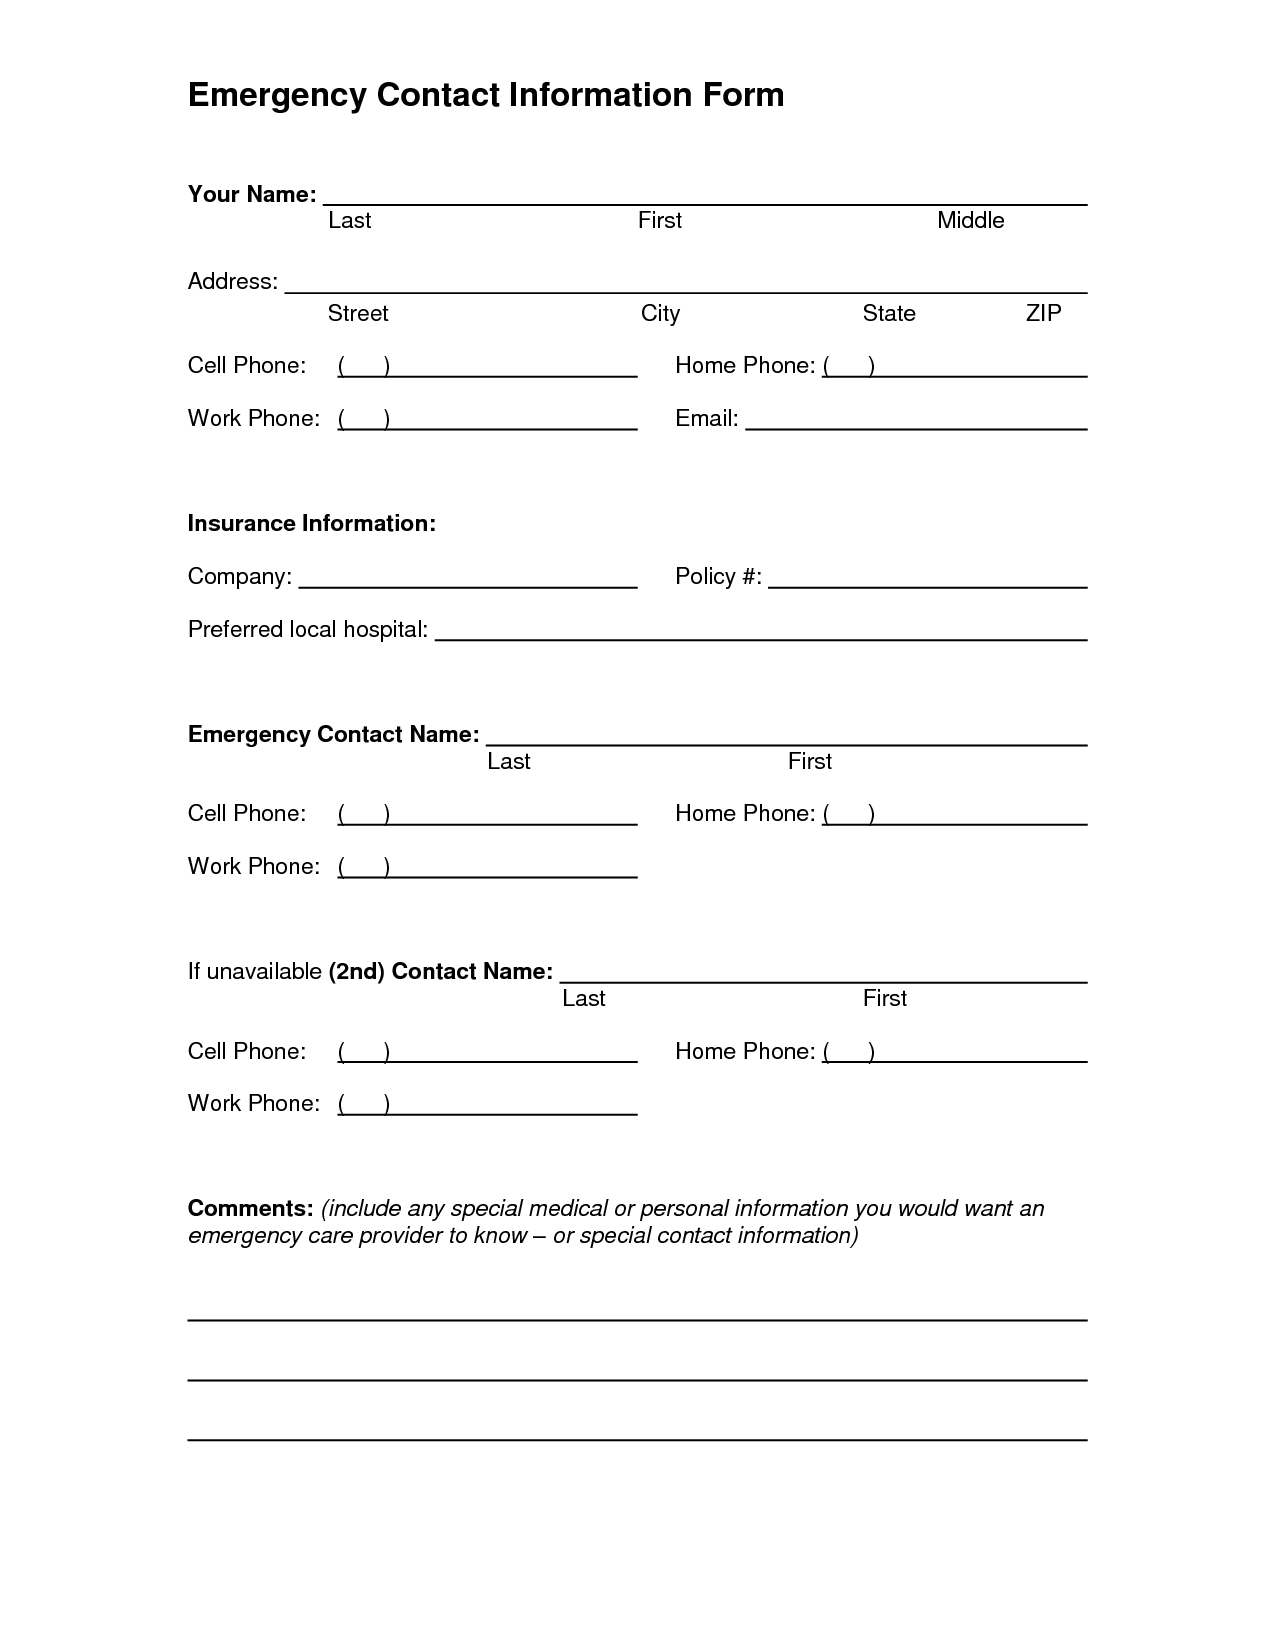 Emergency Contact Form Template - Emergency Contact Information Form ...